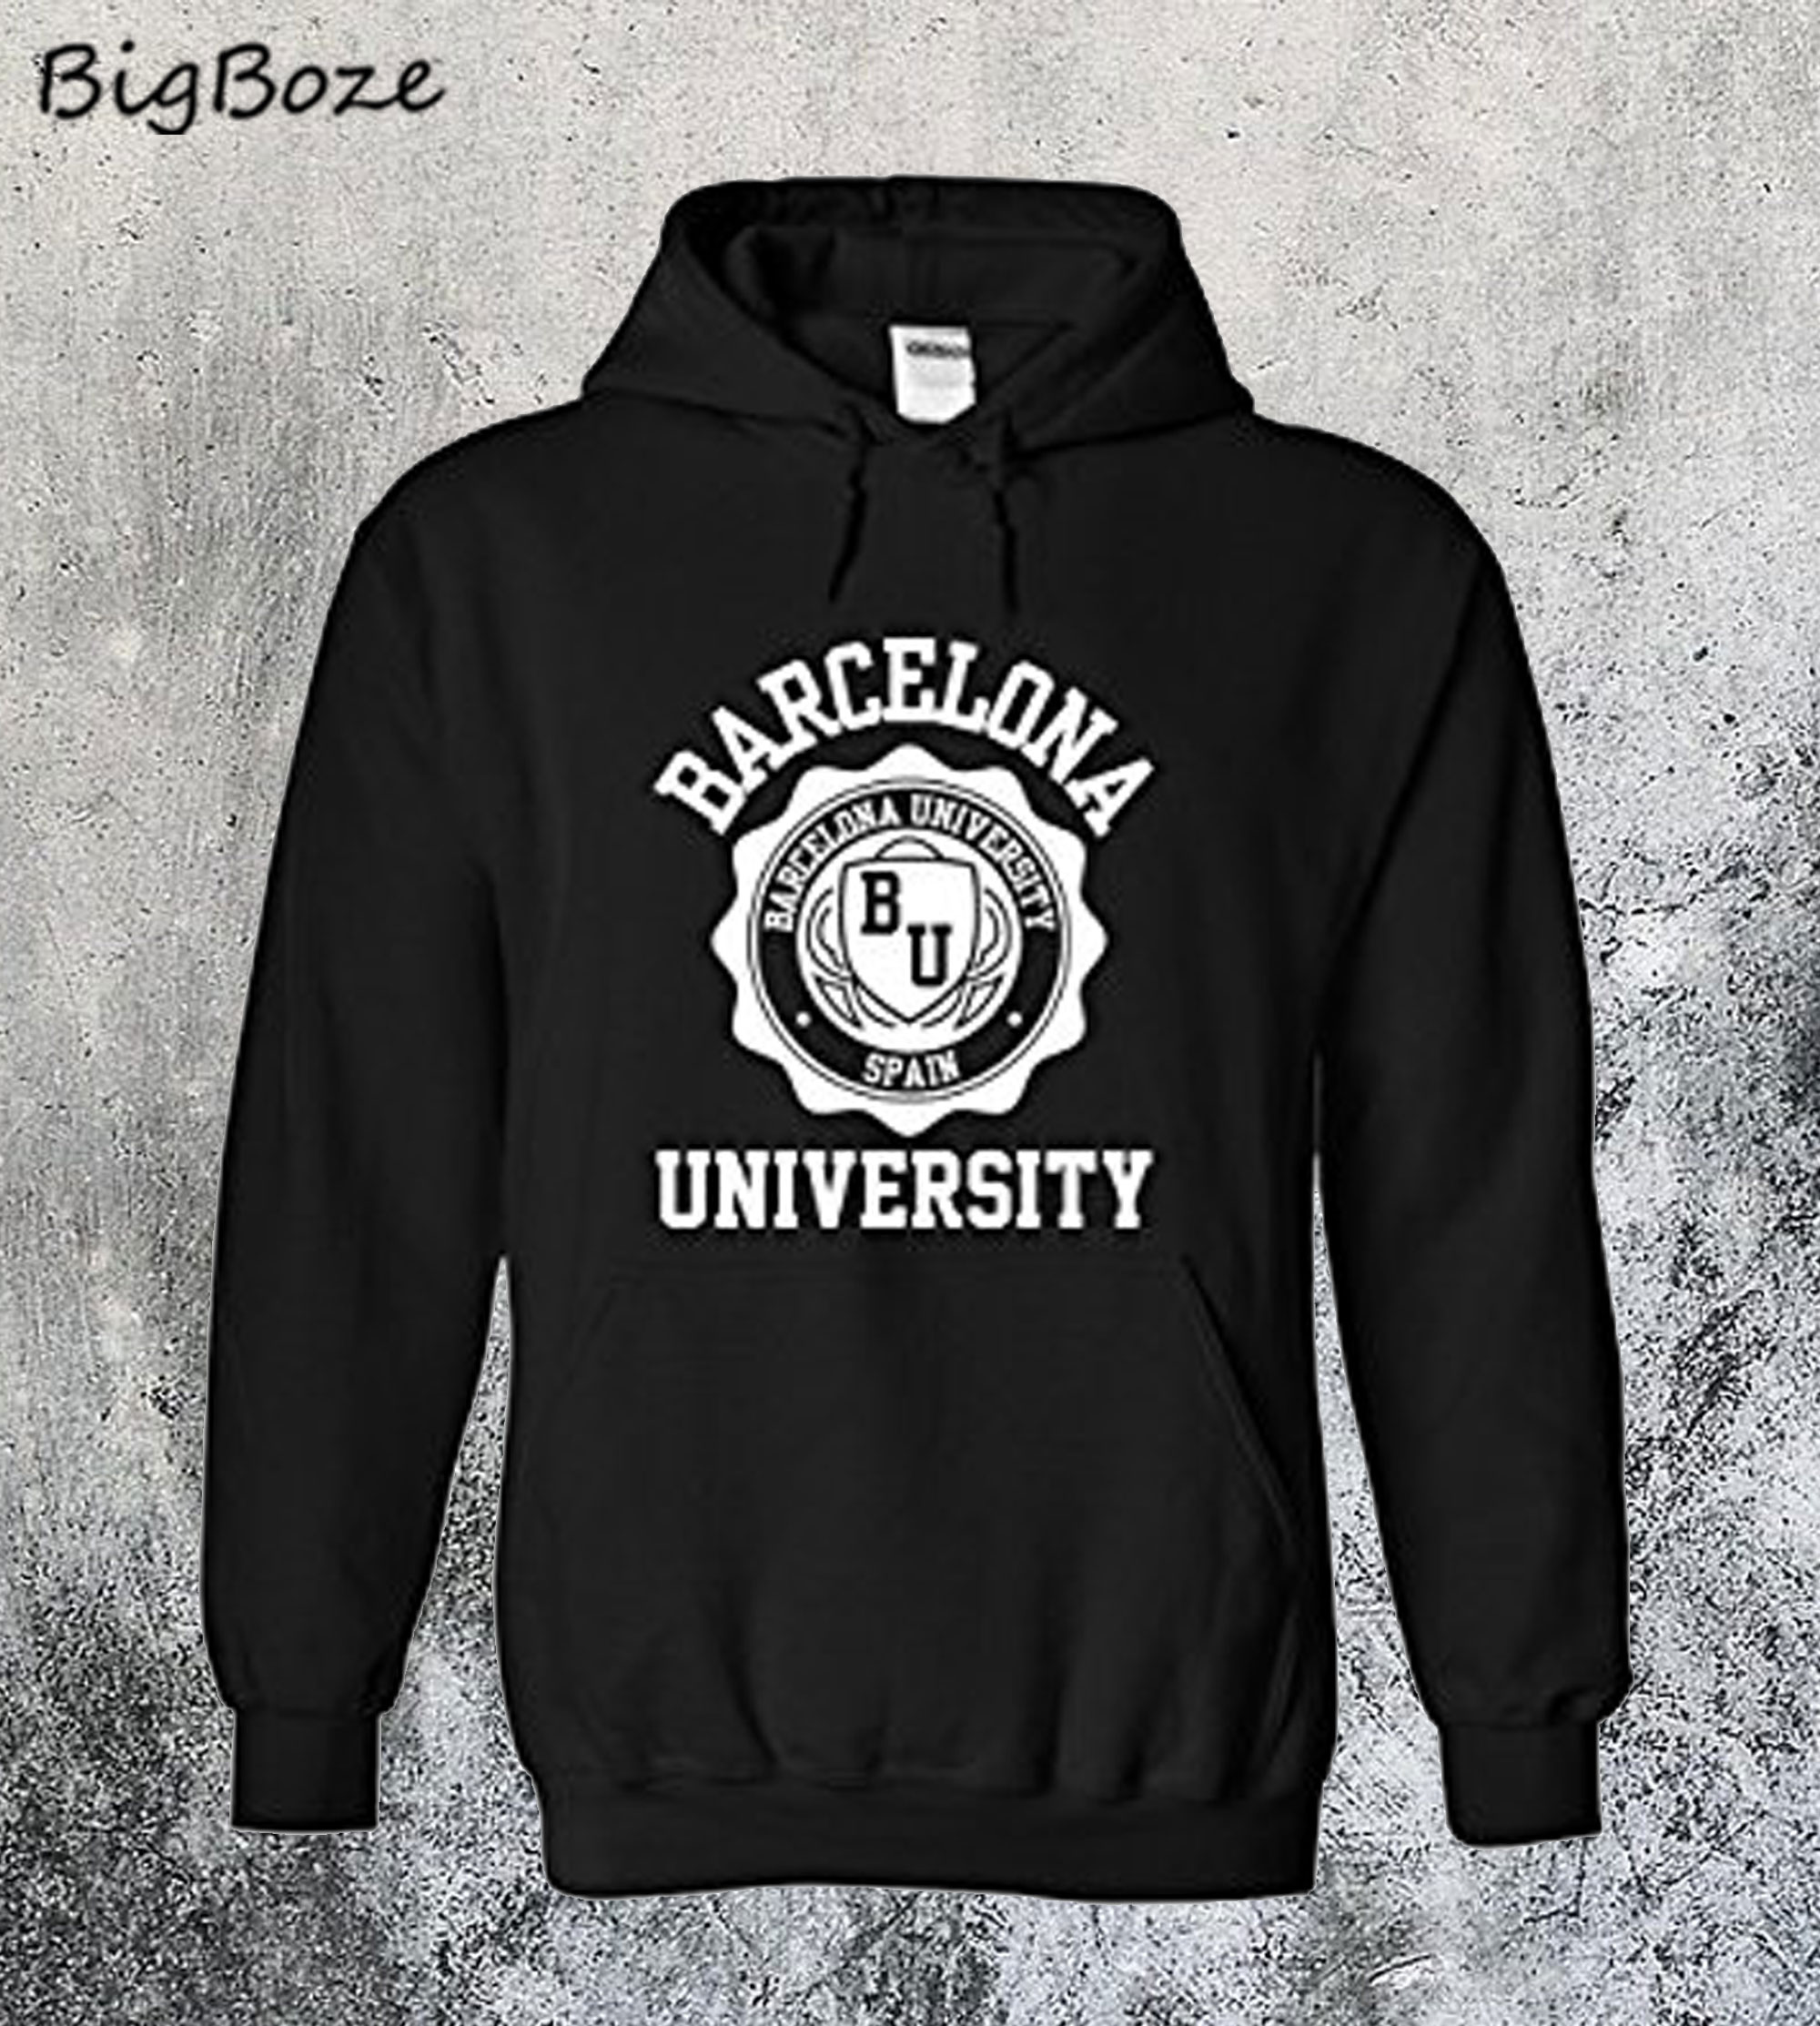 University of Barcelona Hoodie